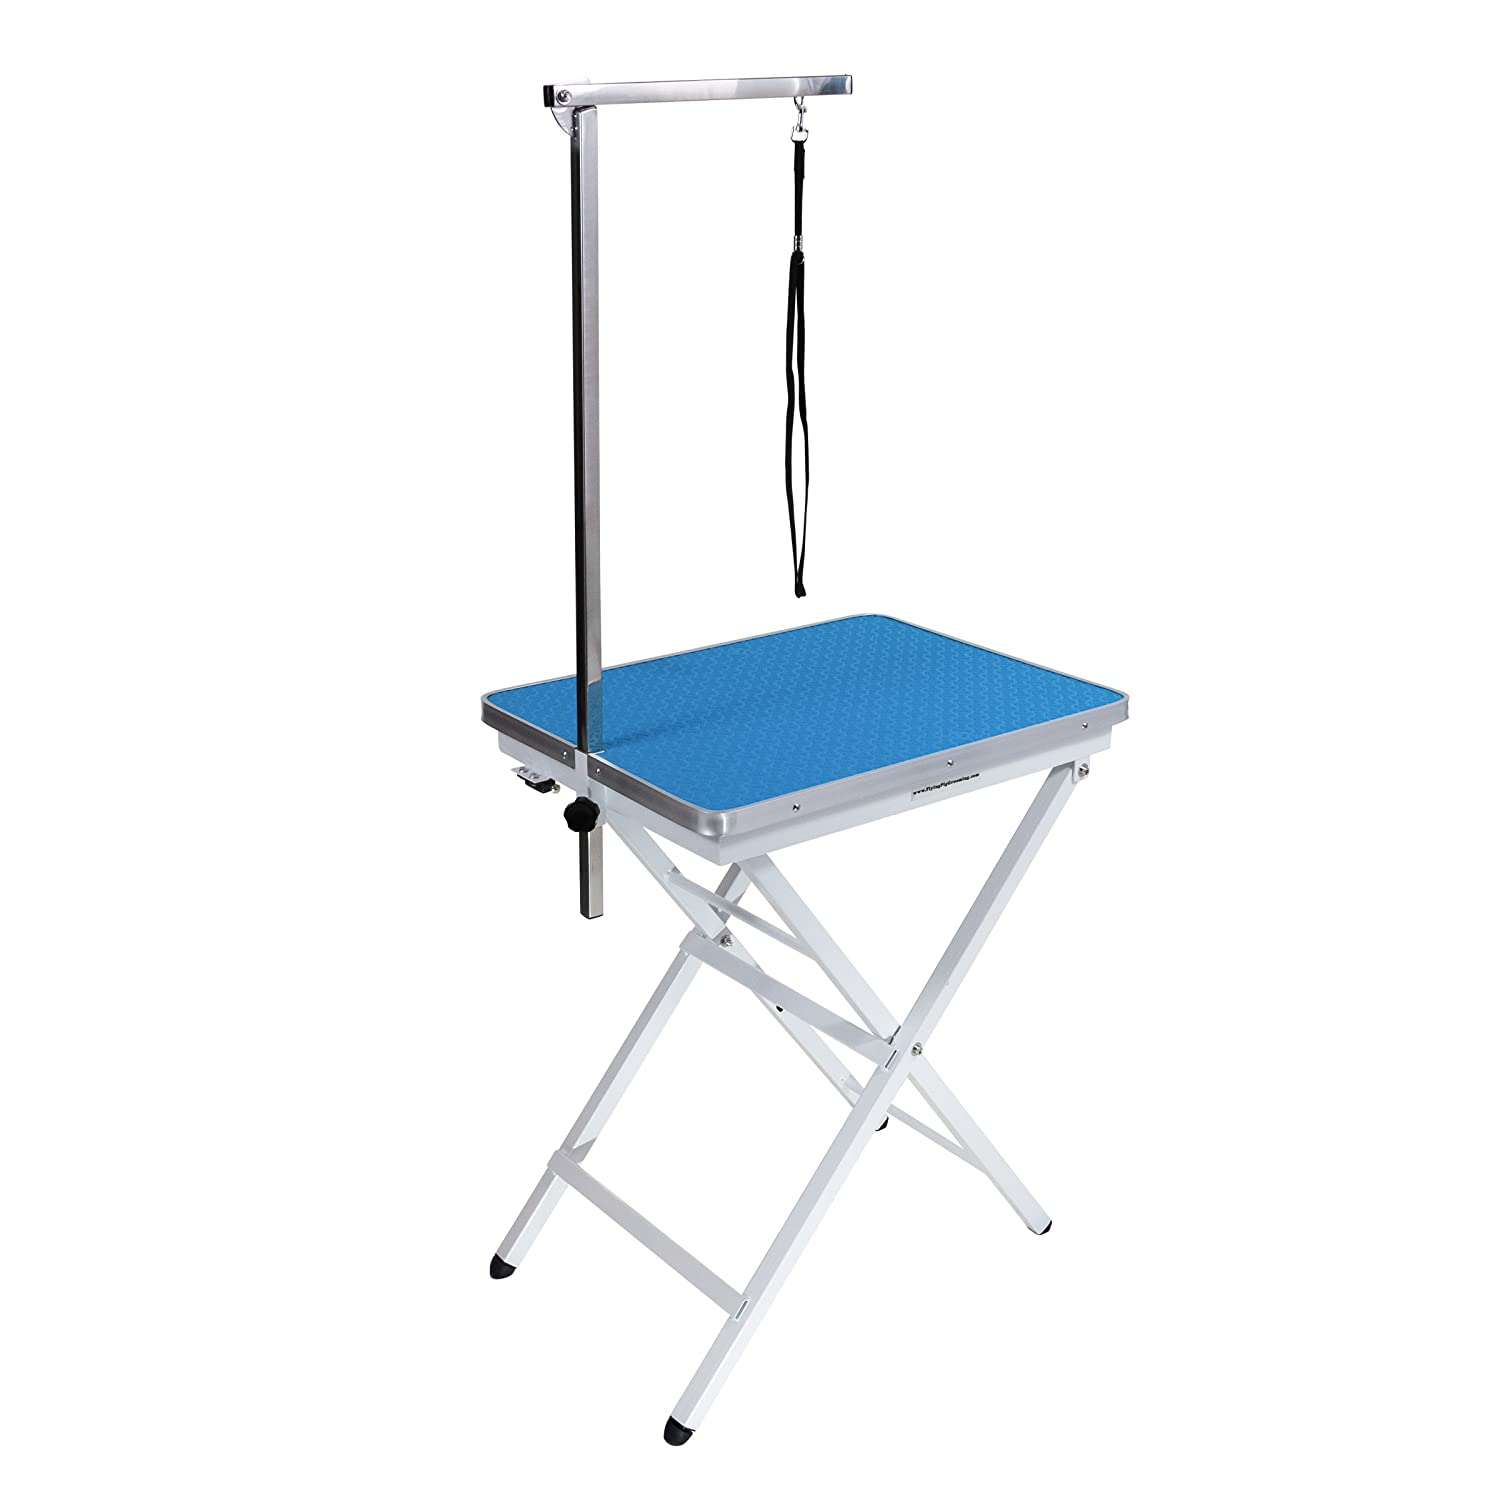 amazoncom mini size pet dog portable grooming table by flying pig grooming sky blue pet supplies